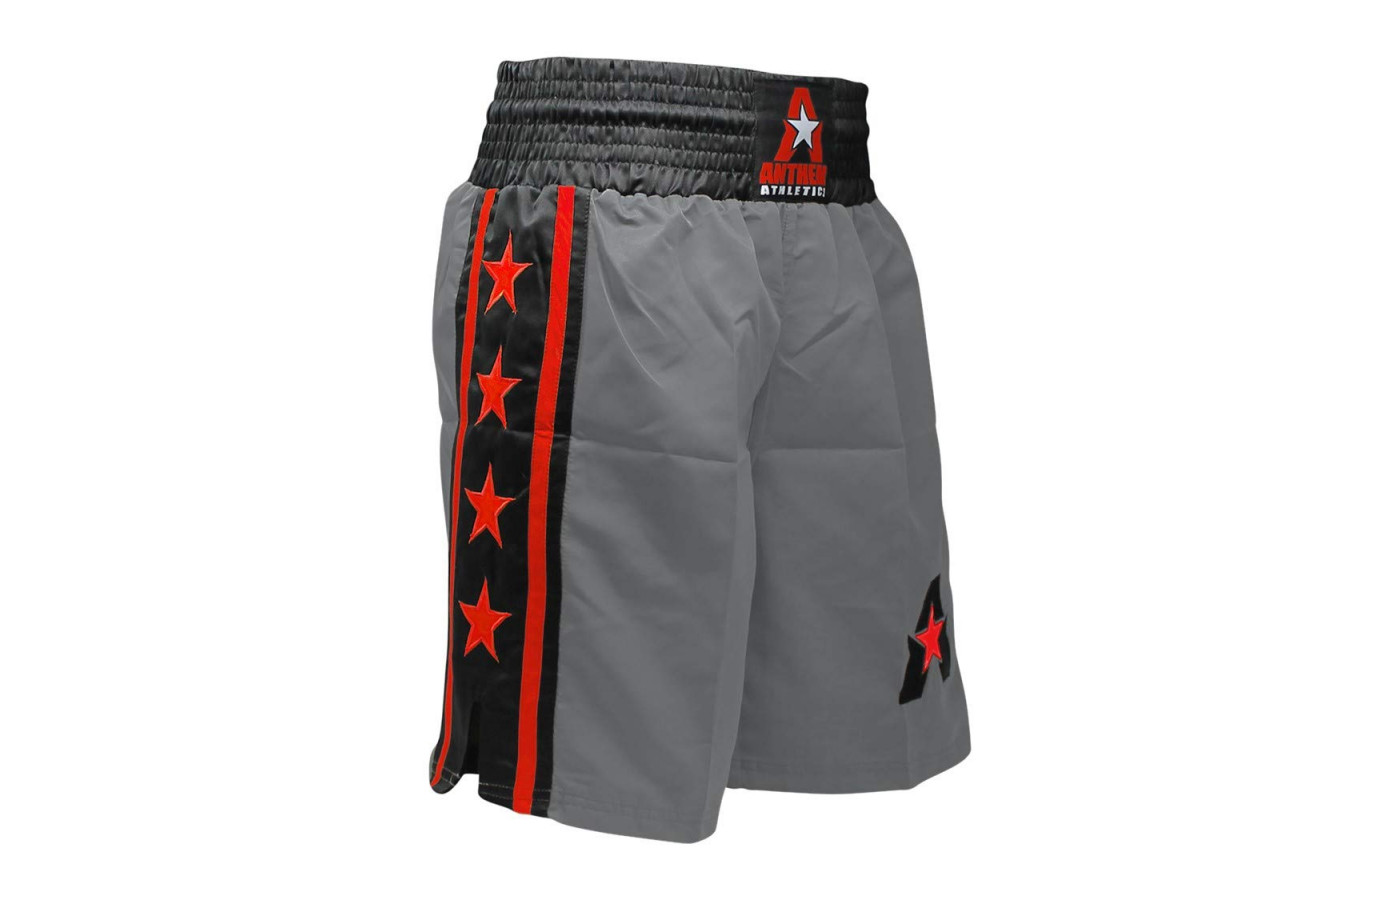 Anthem athletics gray red and black